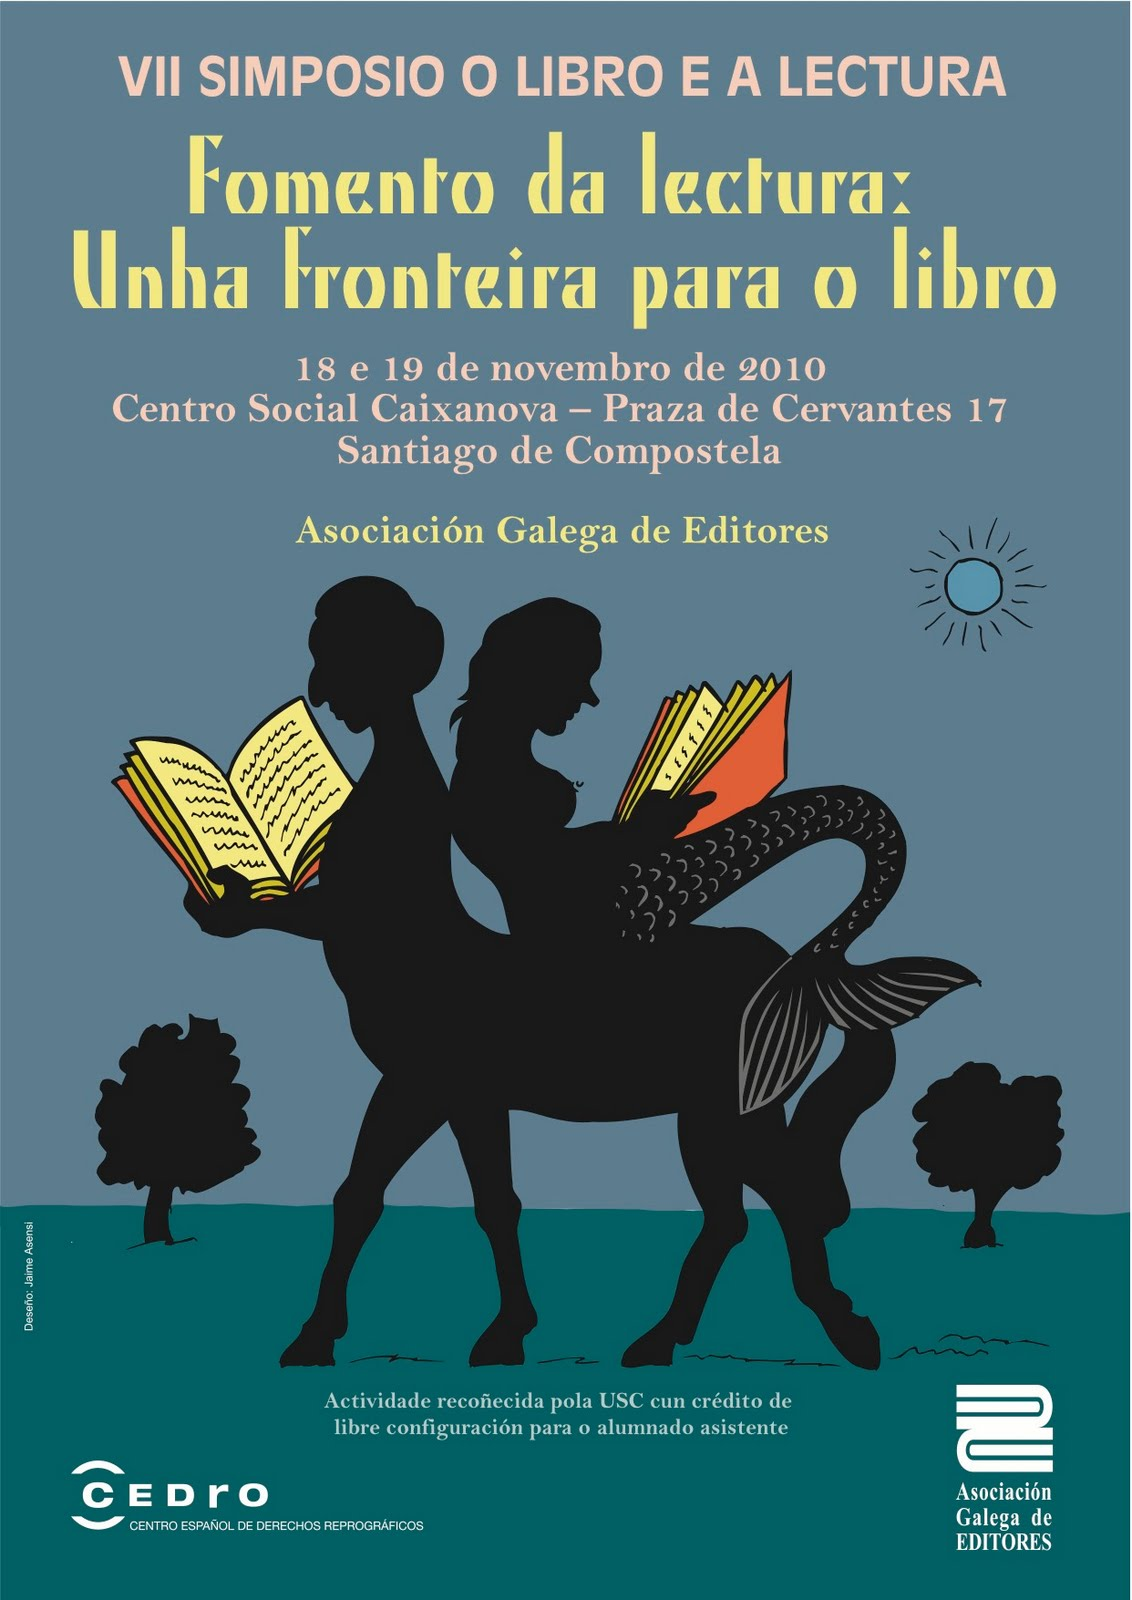 VII Simposio o libro e a lectura